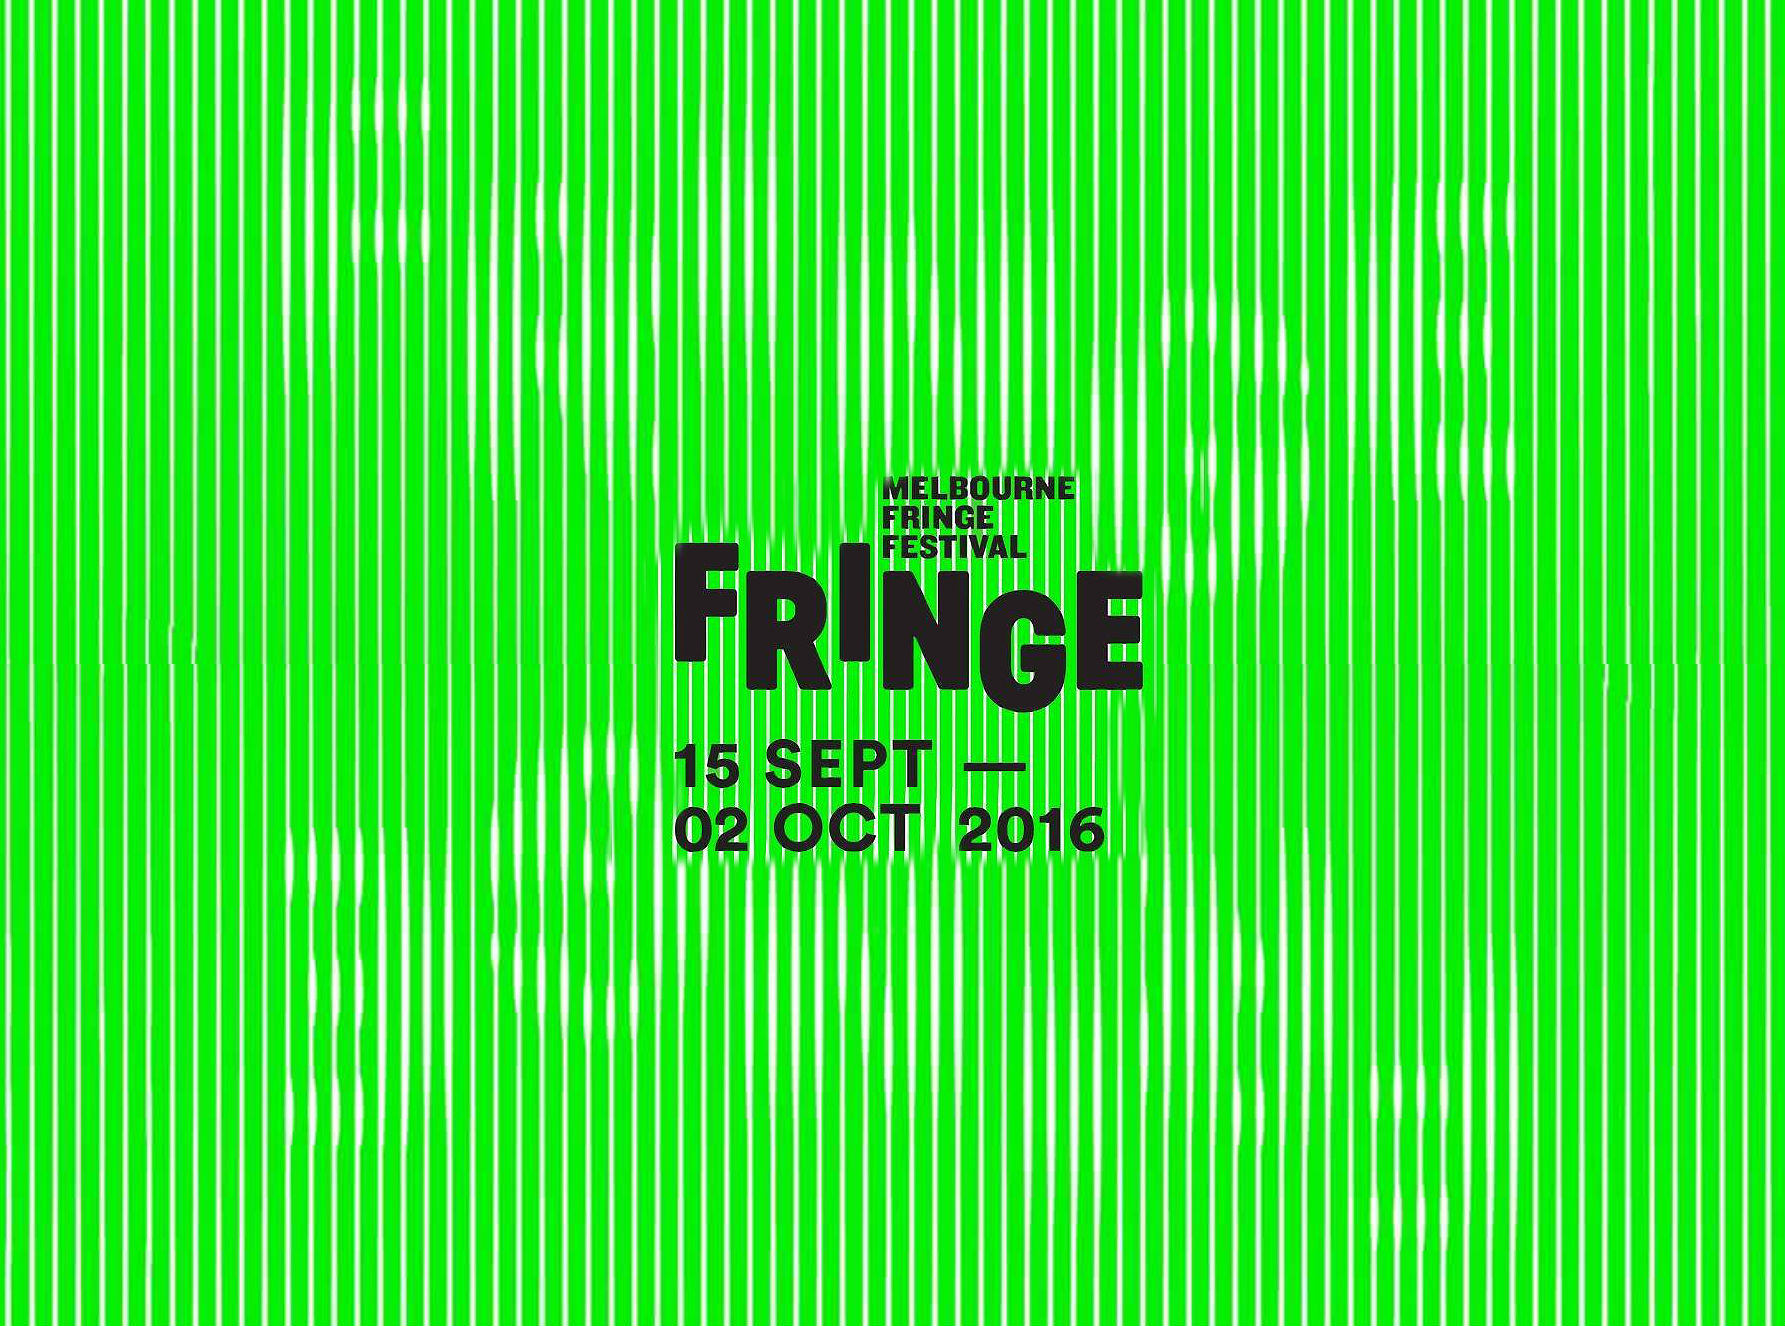 melbourne-fringe-festival-2016-comedy-entertainmen1.jpg